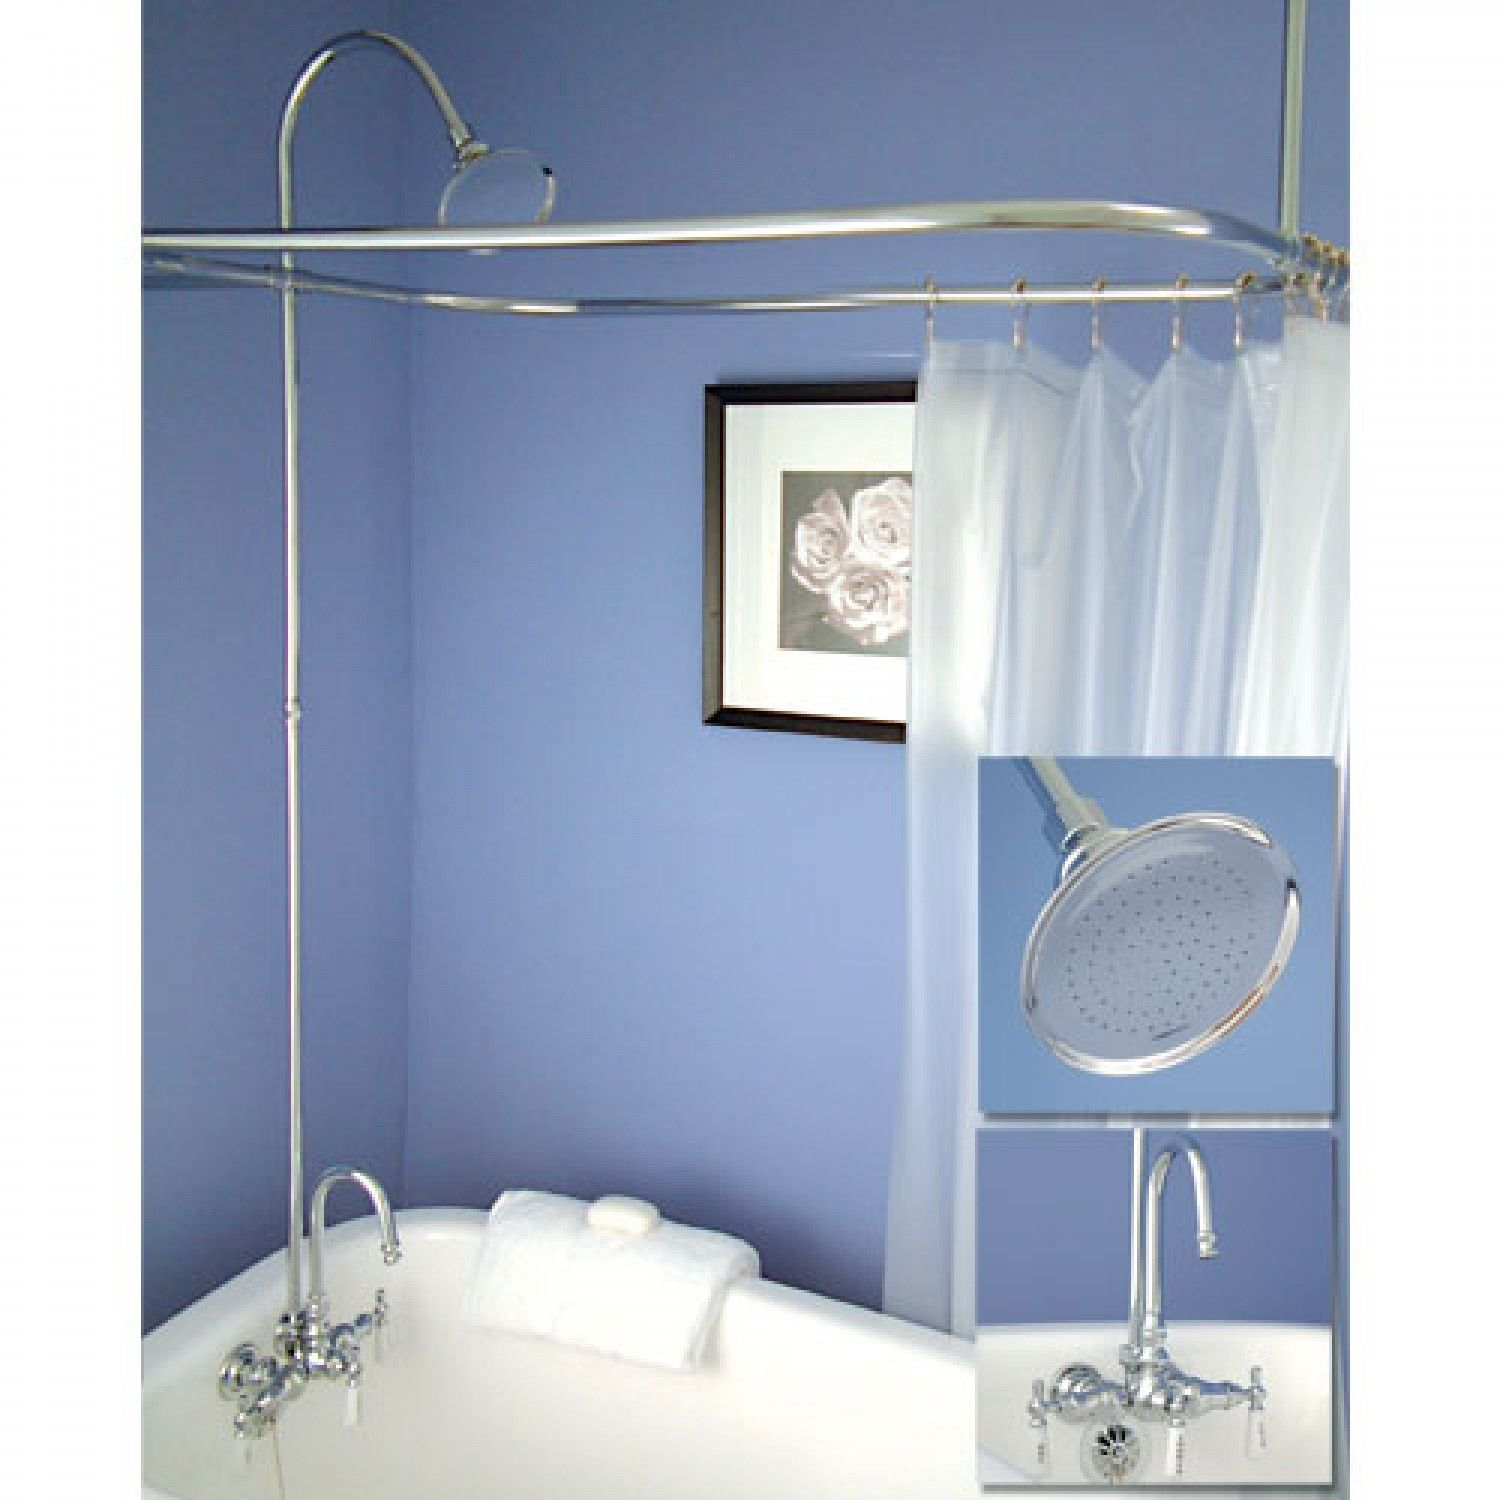 Gooseneck Clawfoot Tub Shower Conversion Kit | Clawfoot tub shower ...